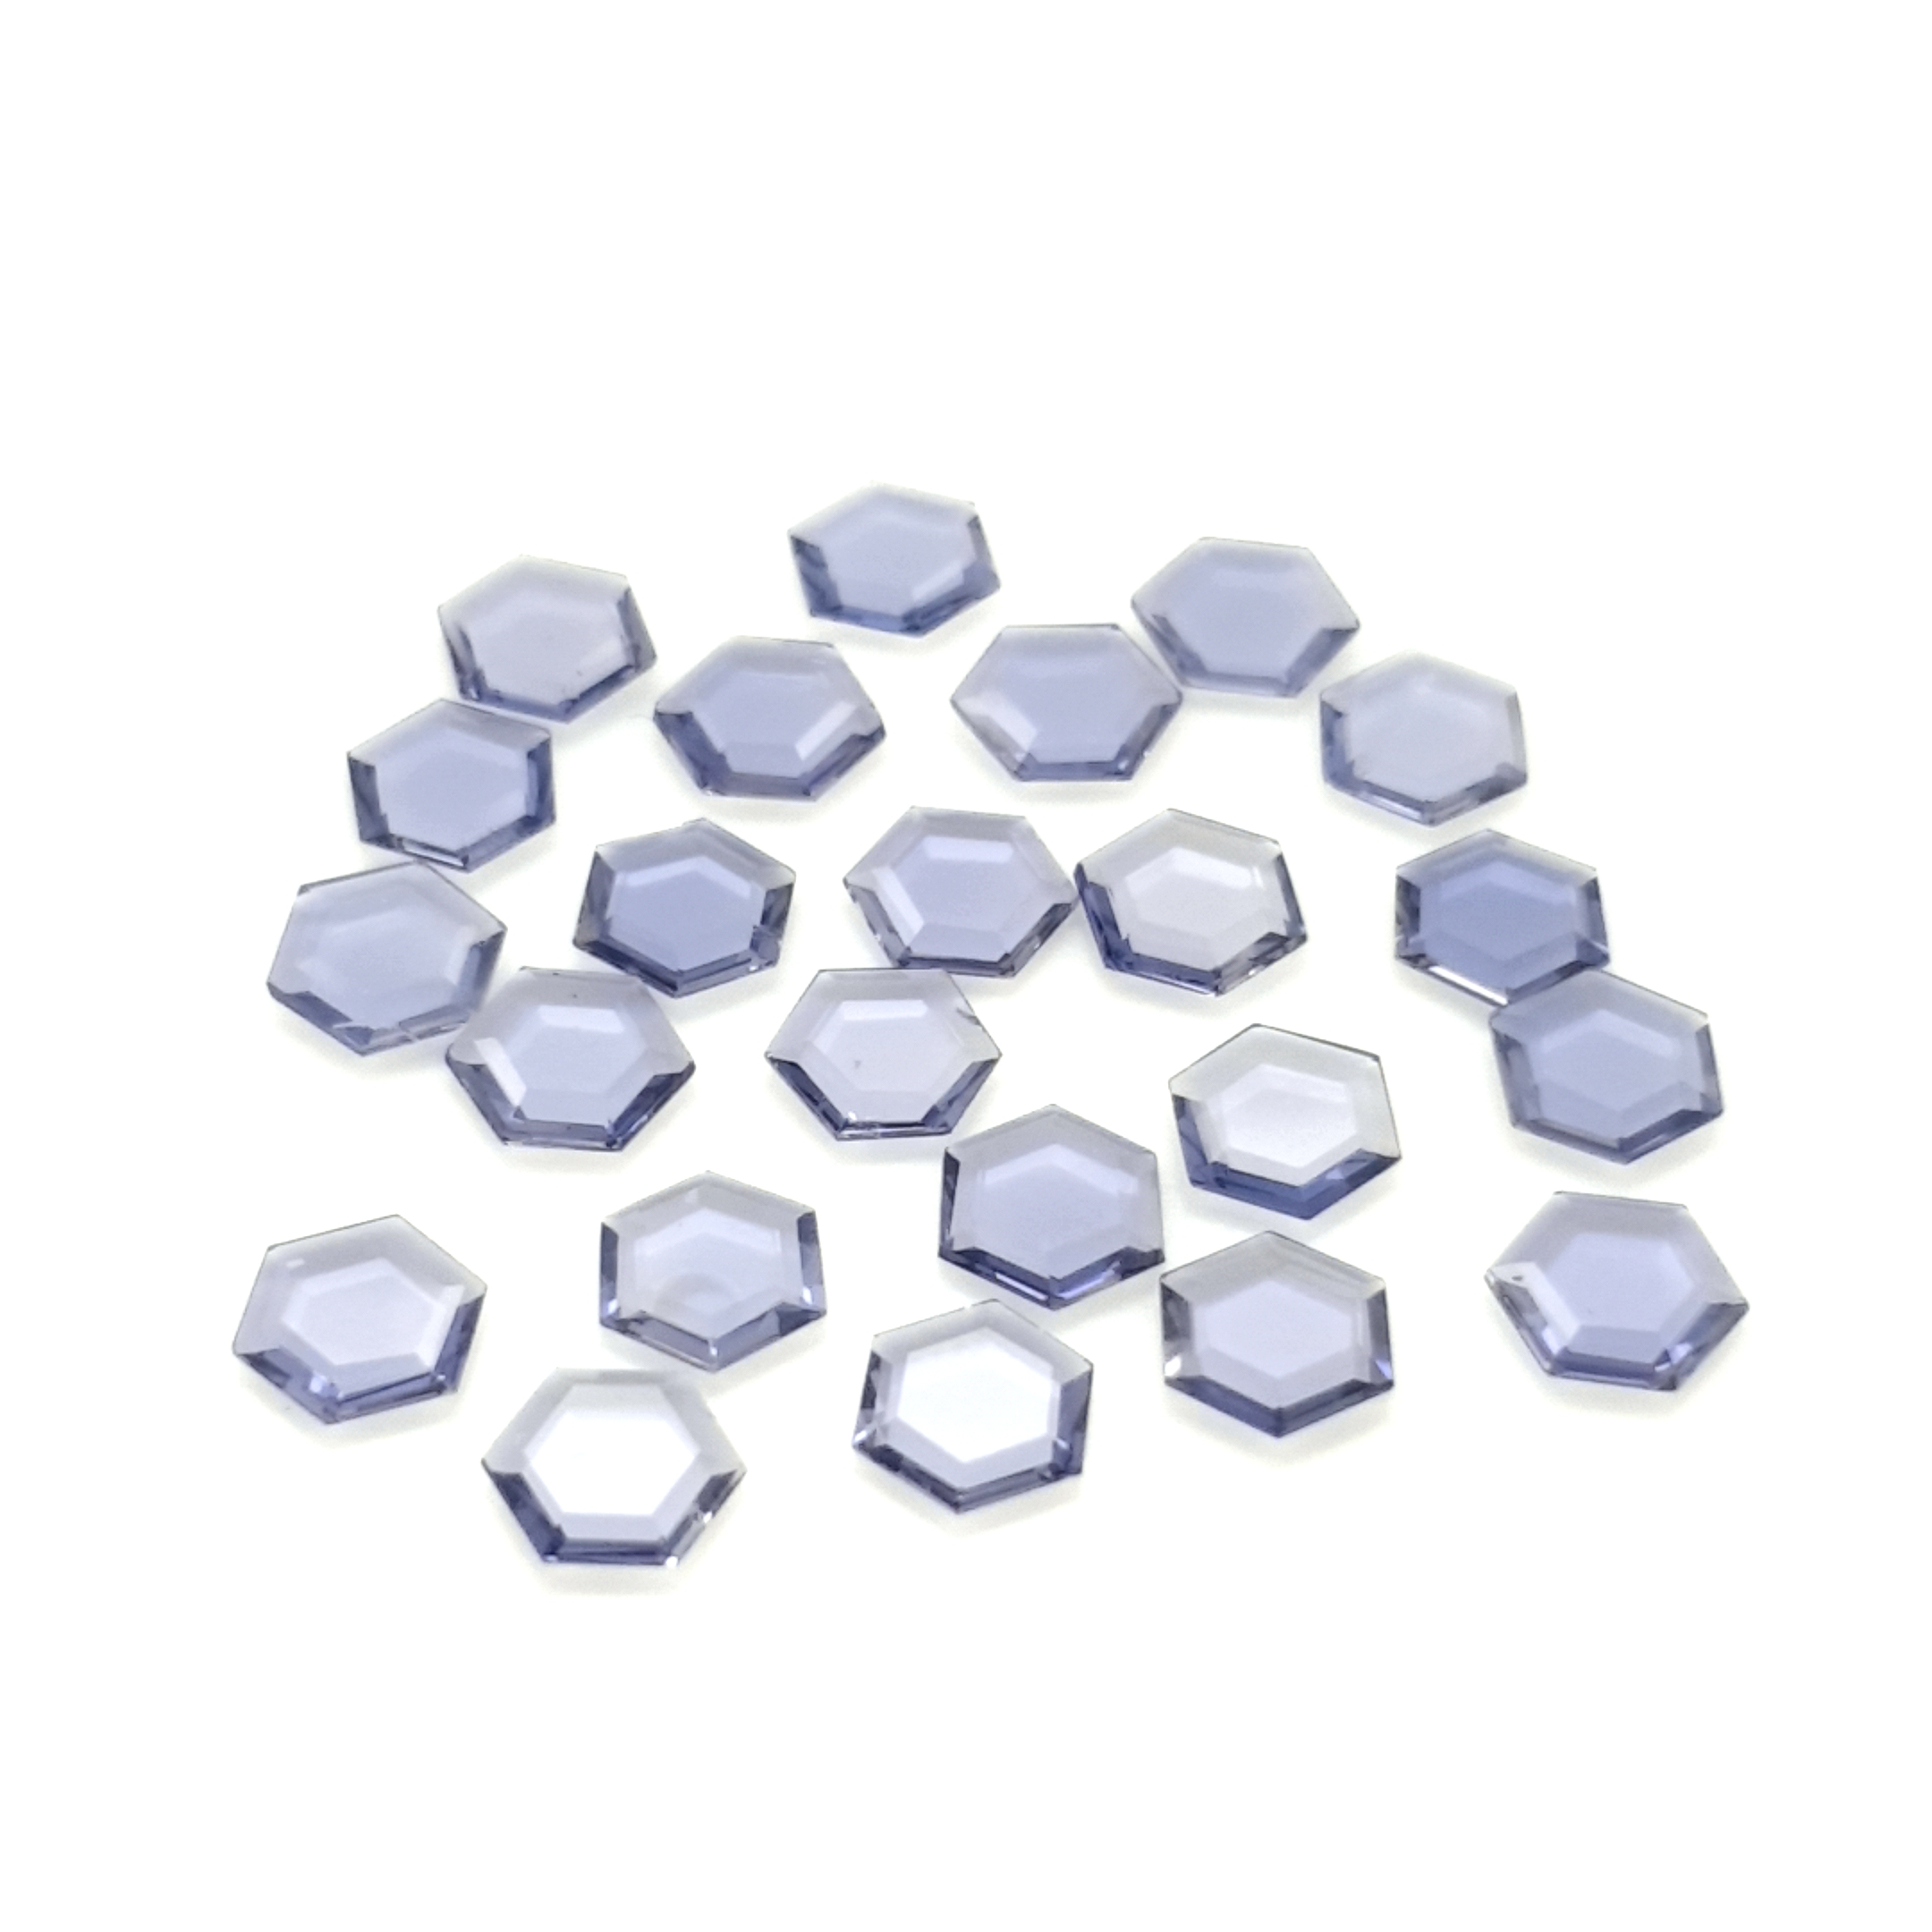 5,5mm Hexagone Iolite IOC20C1 ClaudiaHamann__2021-03-13-20-51-35